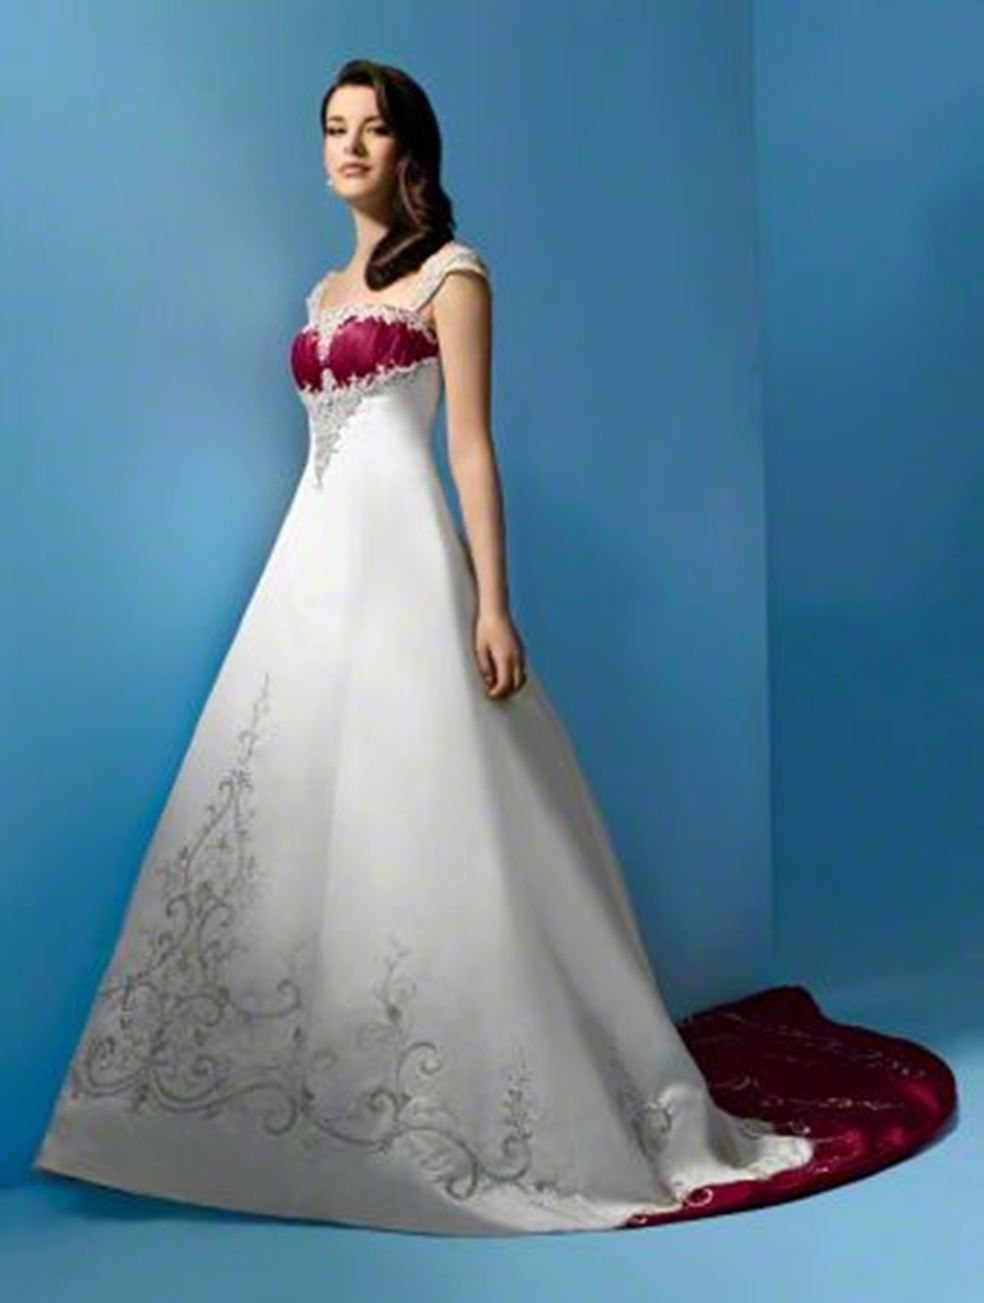 Alfred Angelo Bridal Gown Style - 1193 Bodas